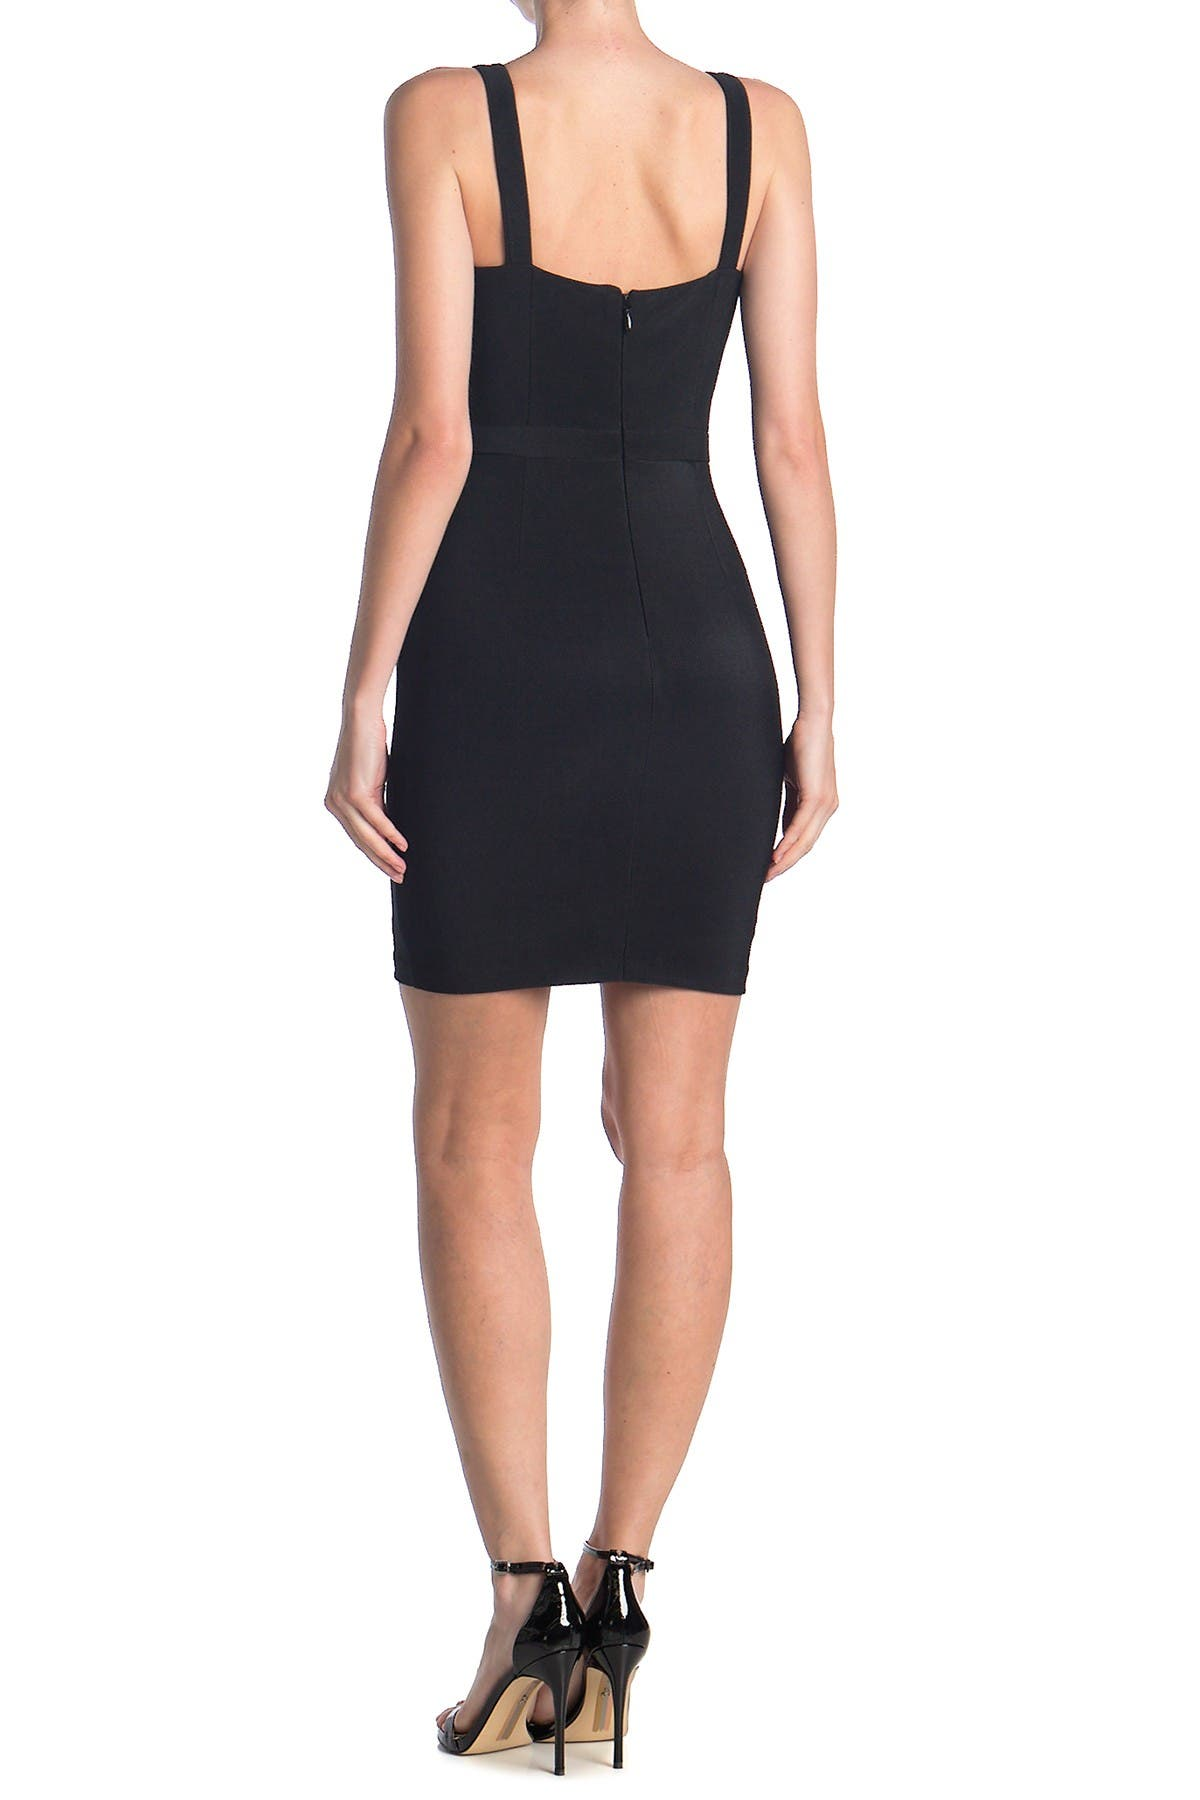 GUESS V-Neck Bandage Dress With Front Cutout